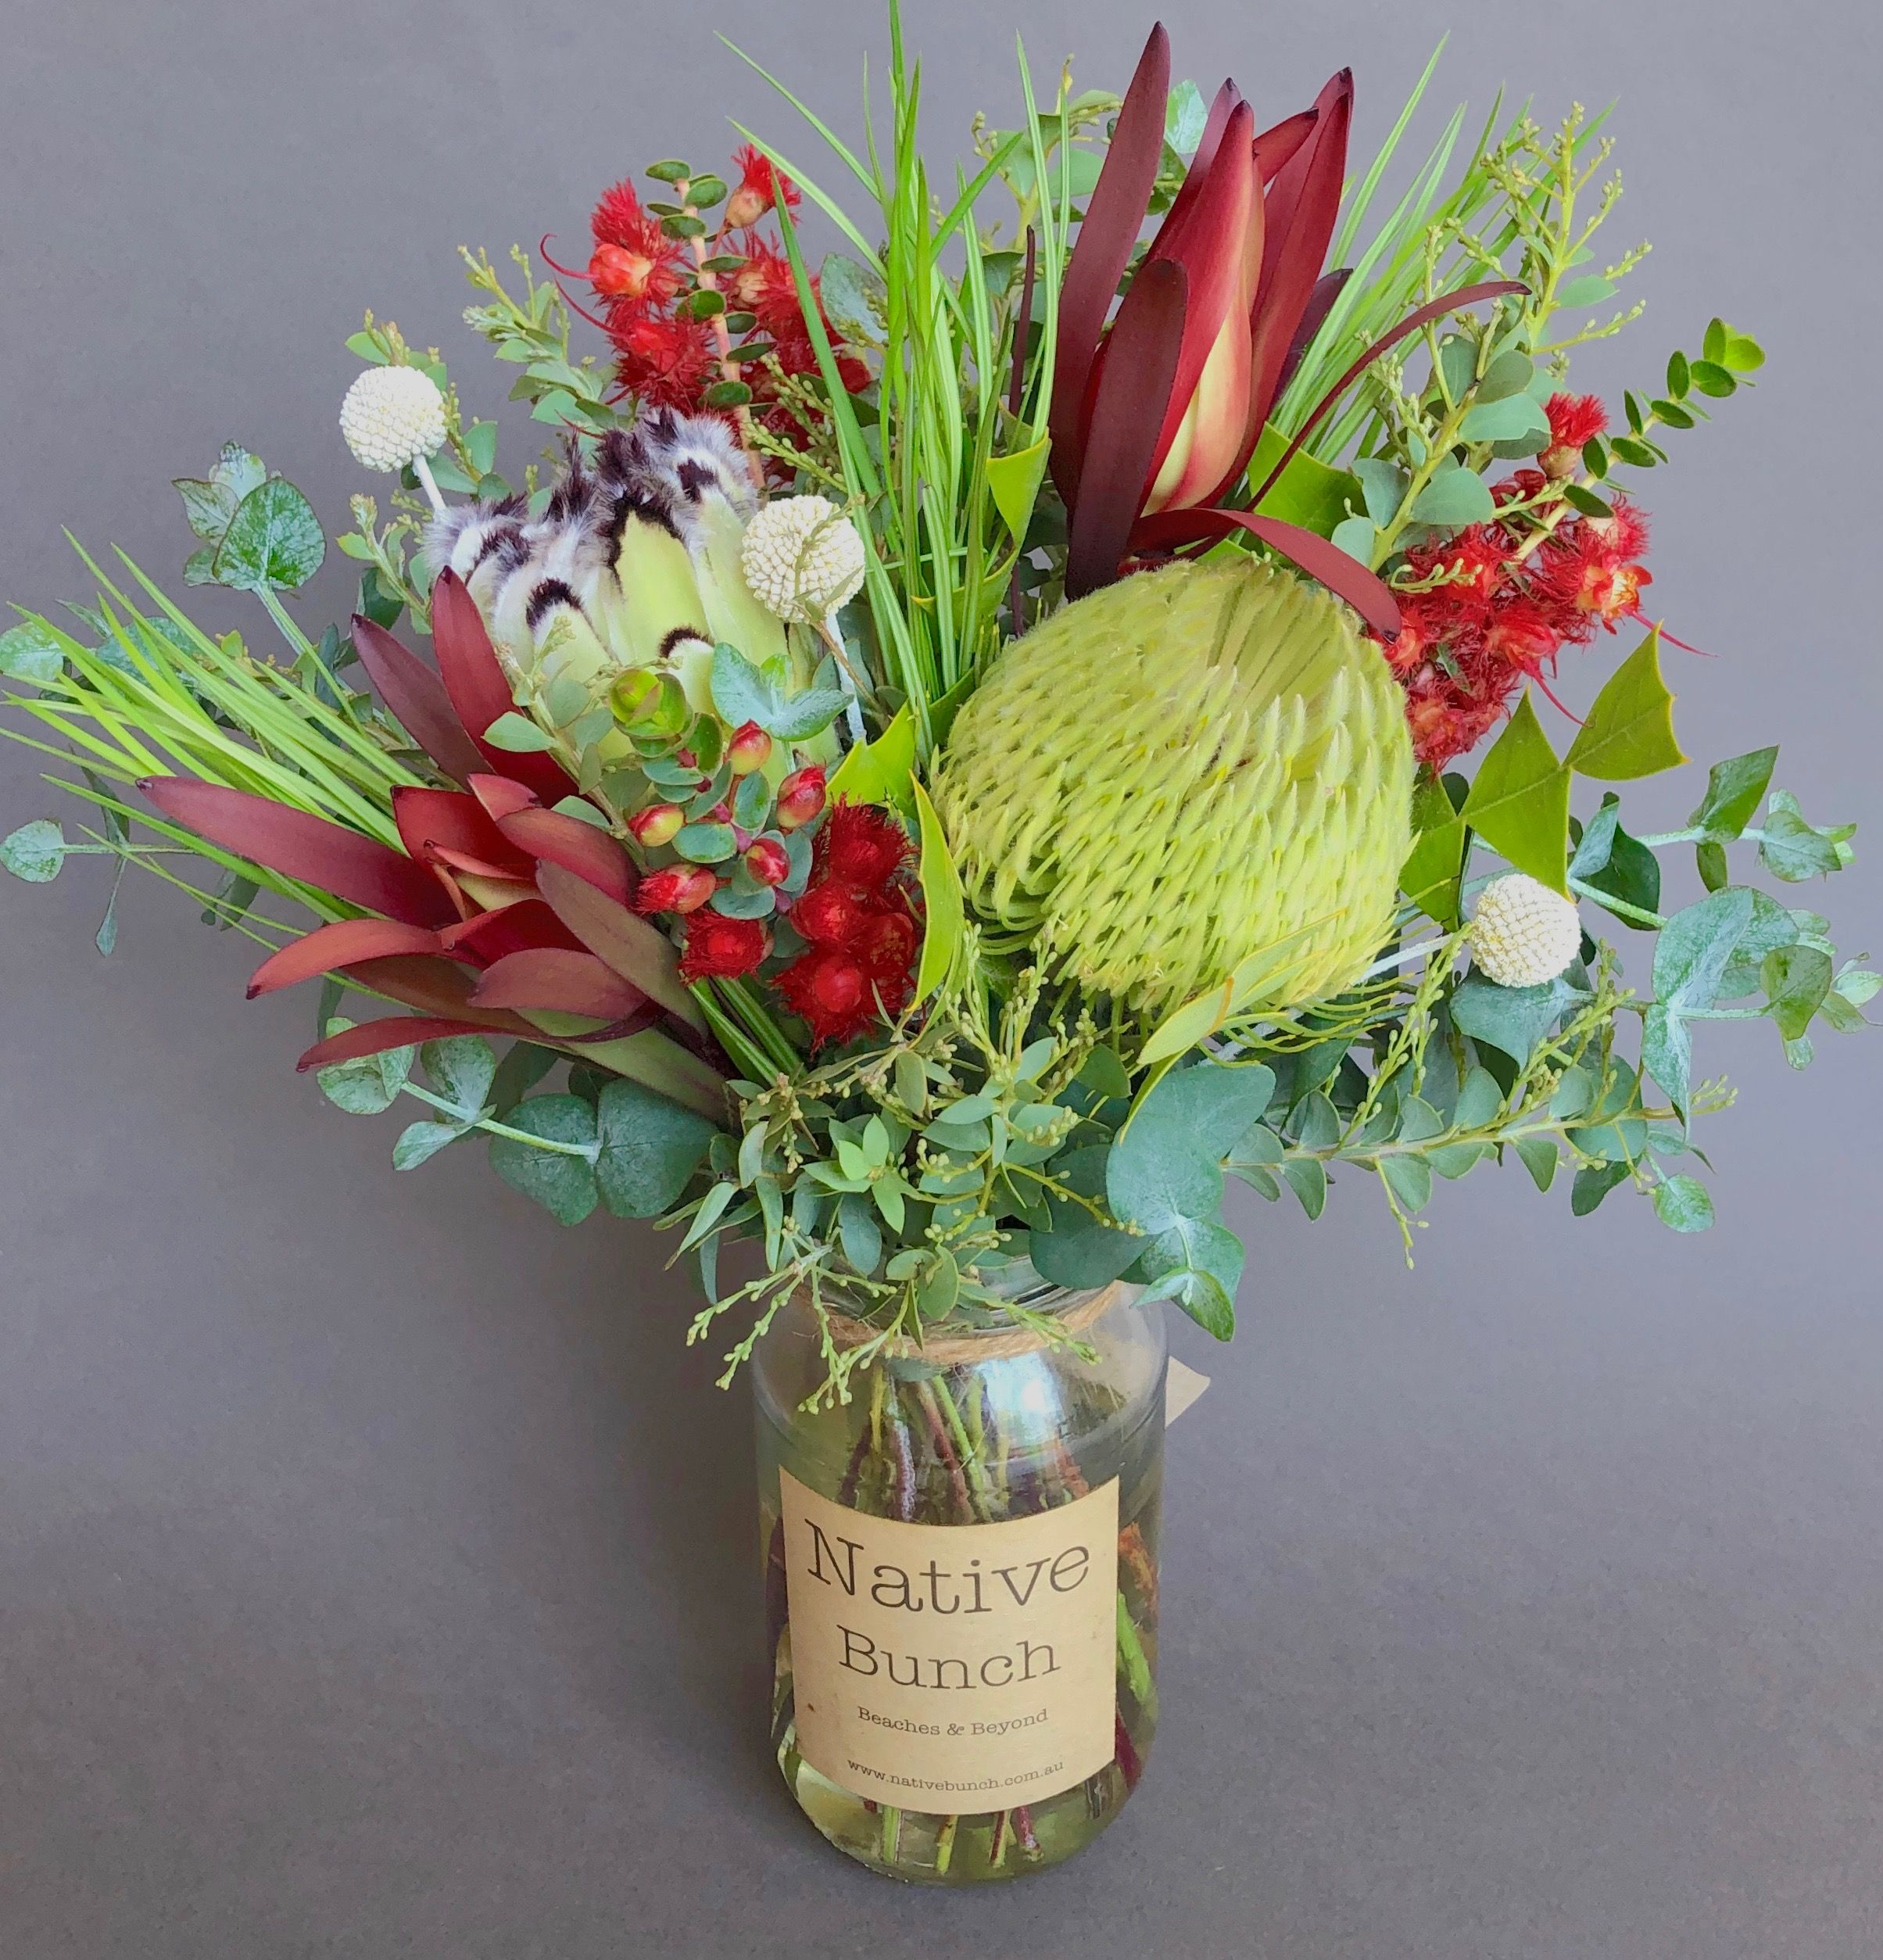 Native Flower Posy By Native Bunch Banksia Protea Verticordia Leucaqdendrons Wattle Emu Grass Flower Delivery Australian Native Flowers Flowers